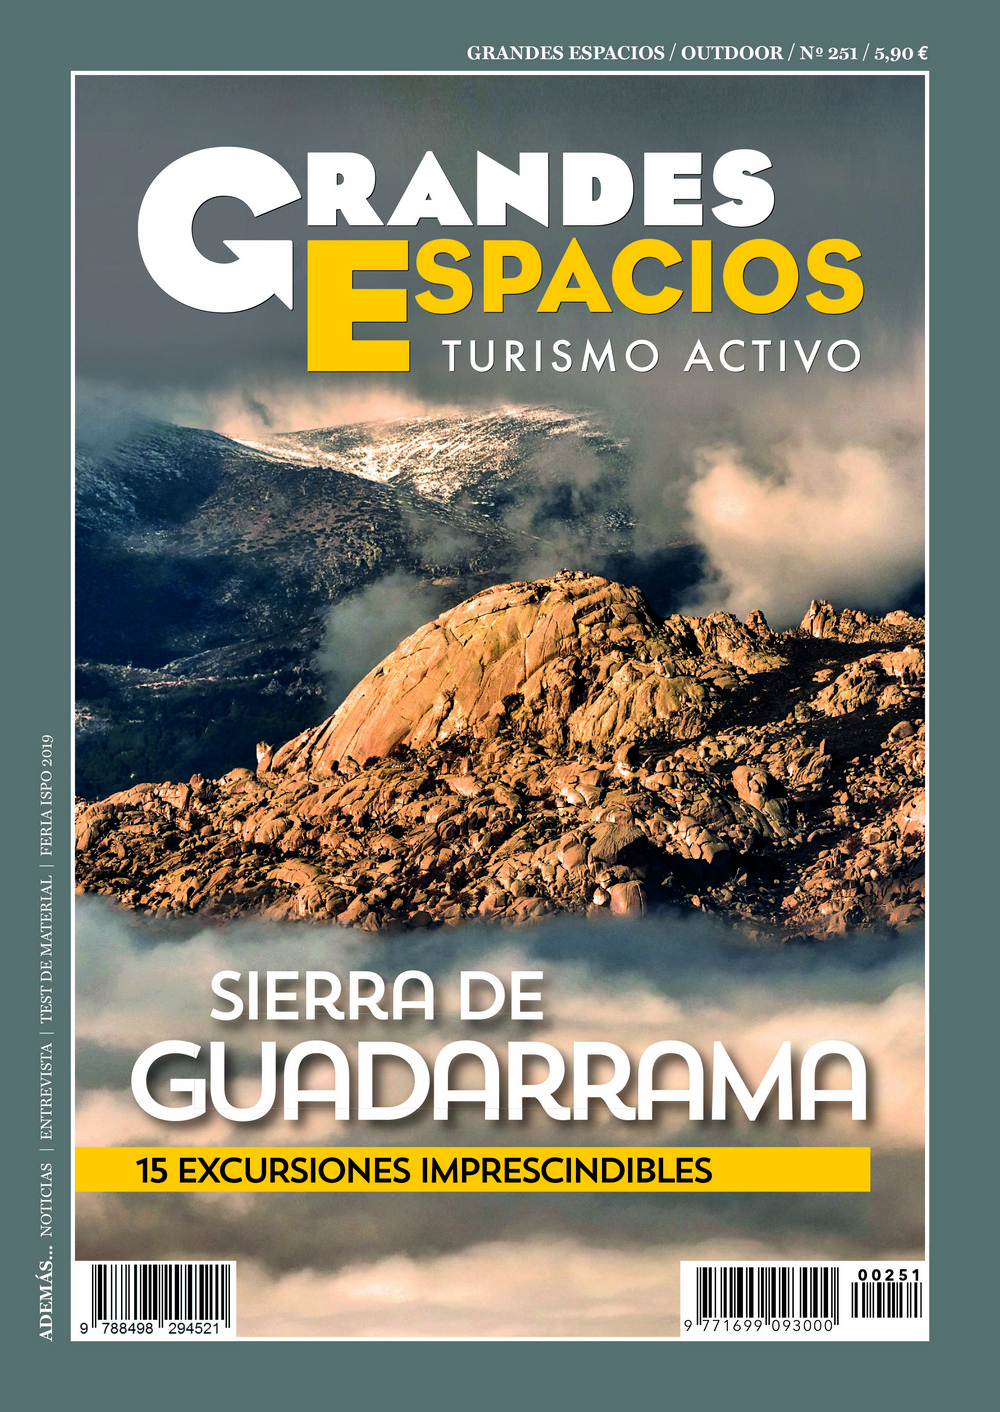 Guadarrama. 15 excursiones imprescindibles